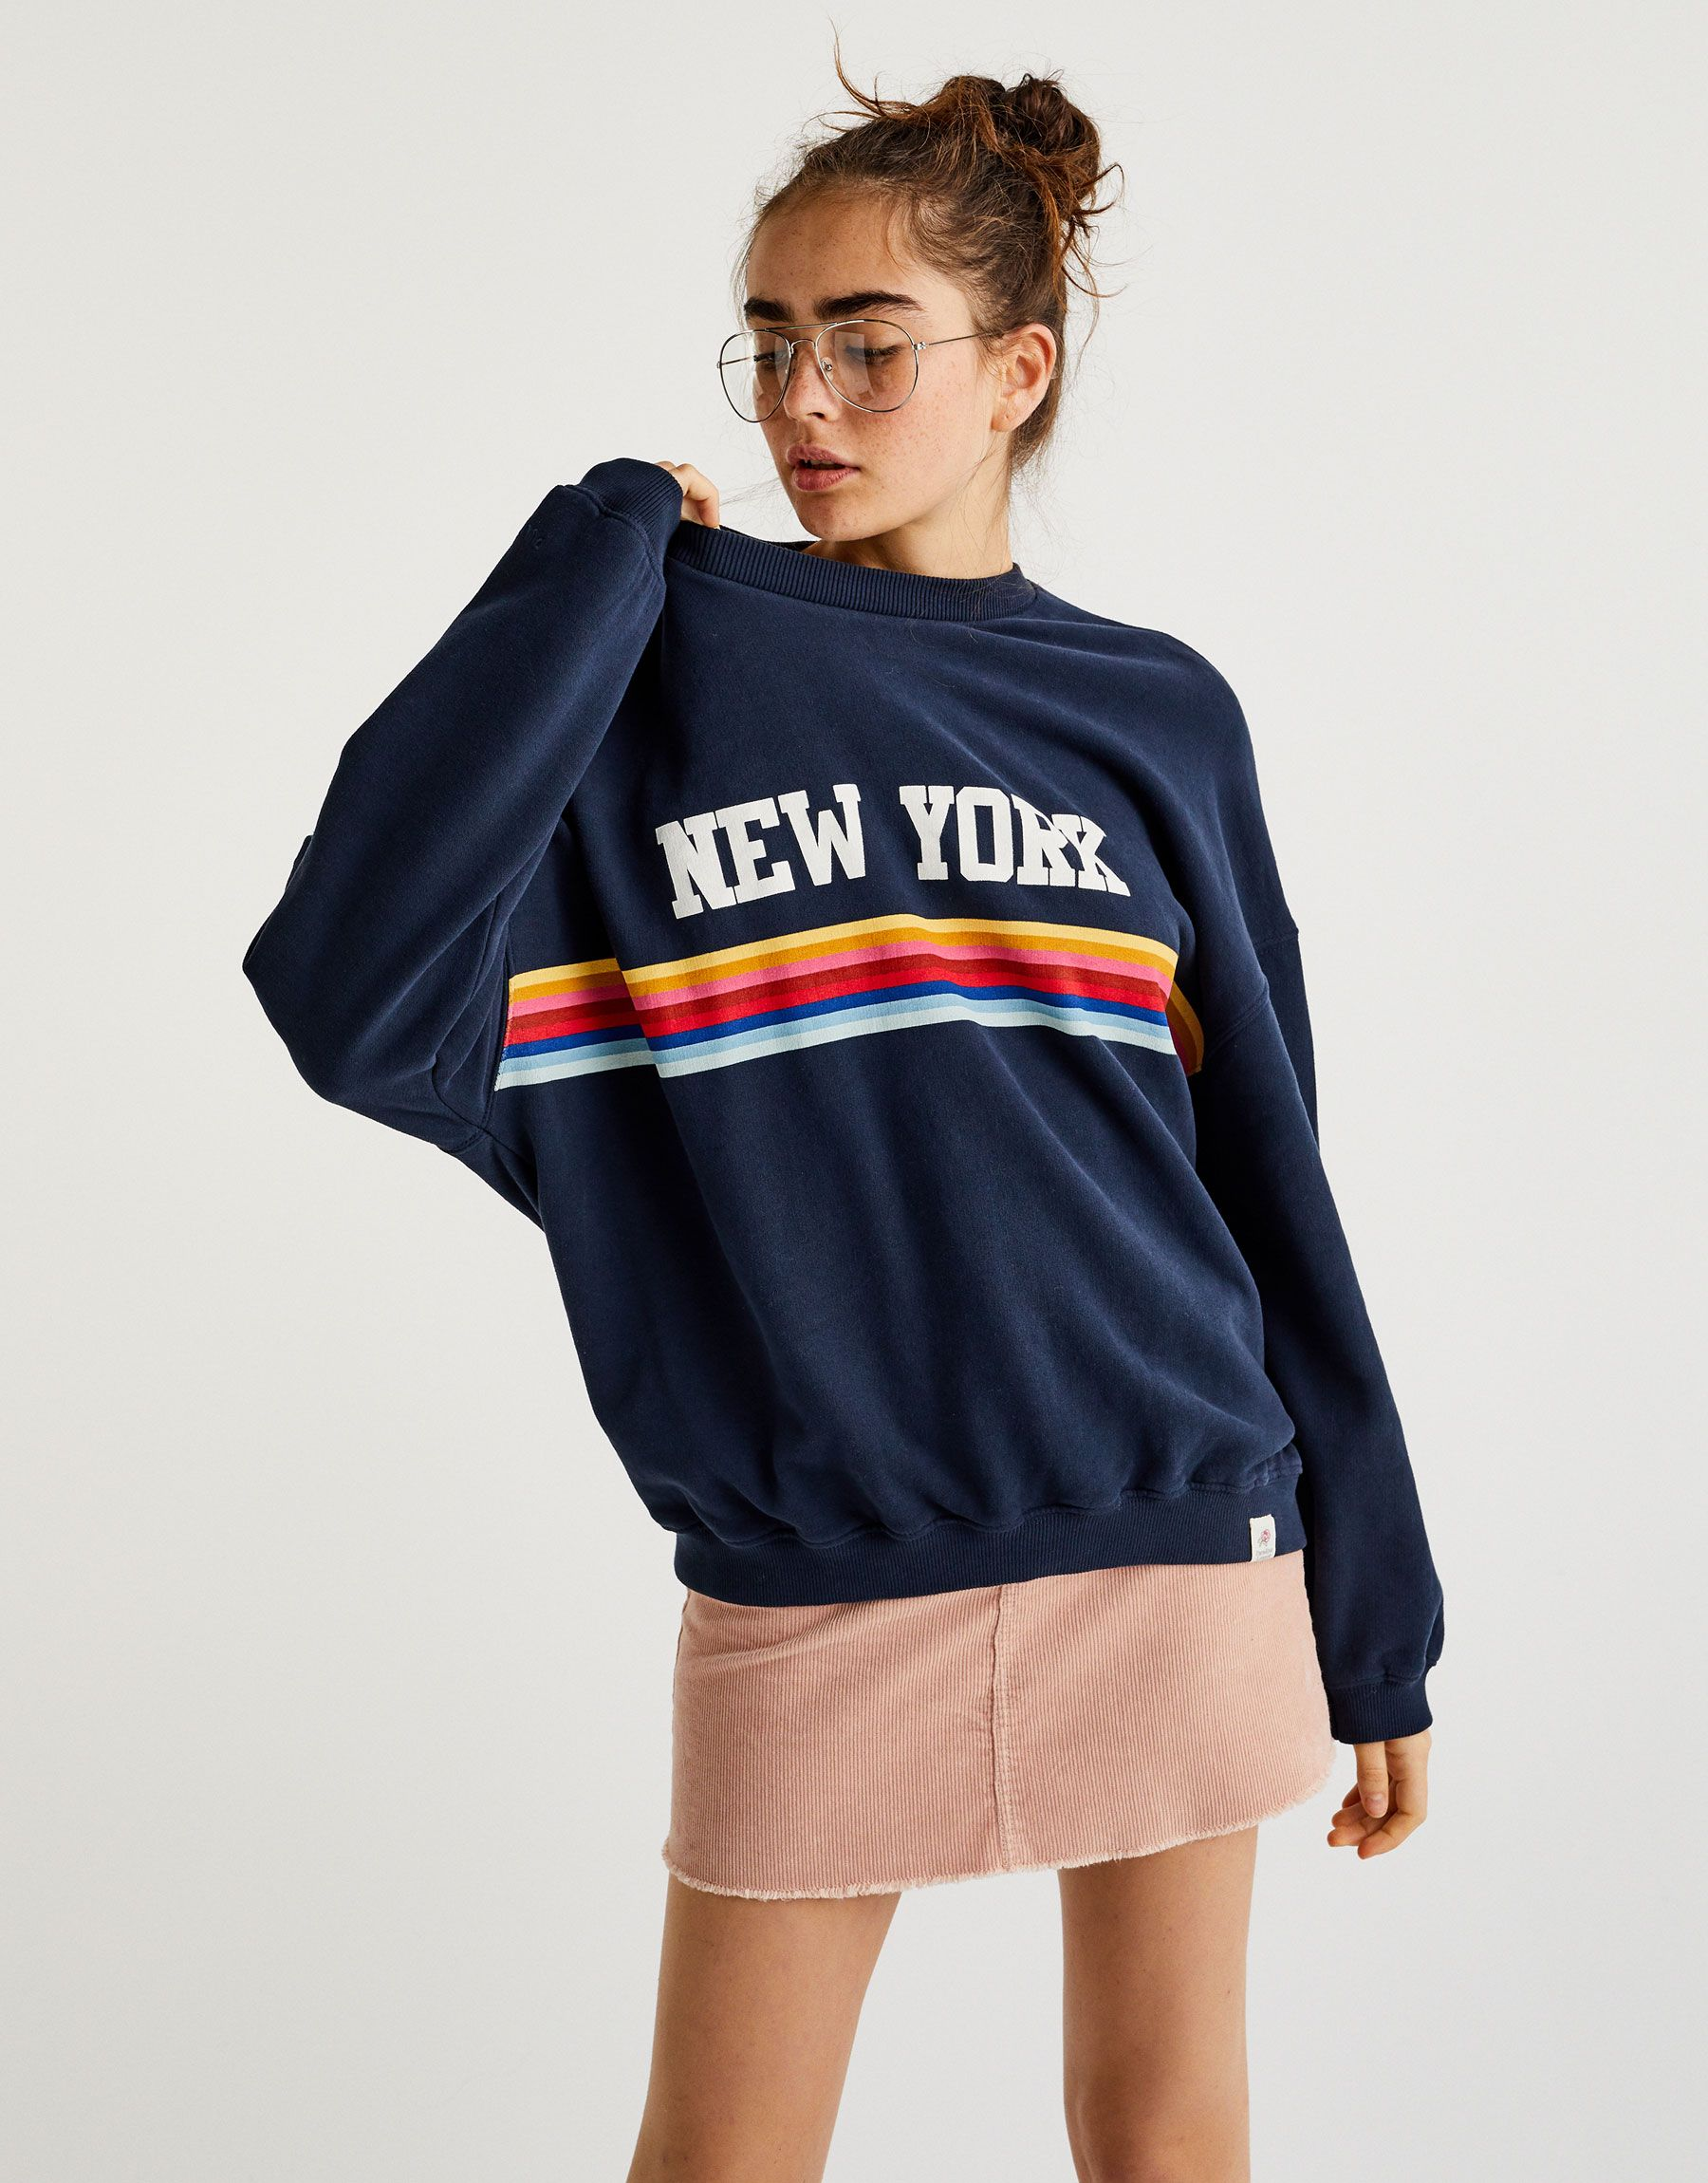 f39efdee3d 'New York' rainbow print sweatshirt - Prints - Sweatshirts & Hoodies -  Clothing - Woman - PULL&BEAR United Kingdom. '